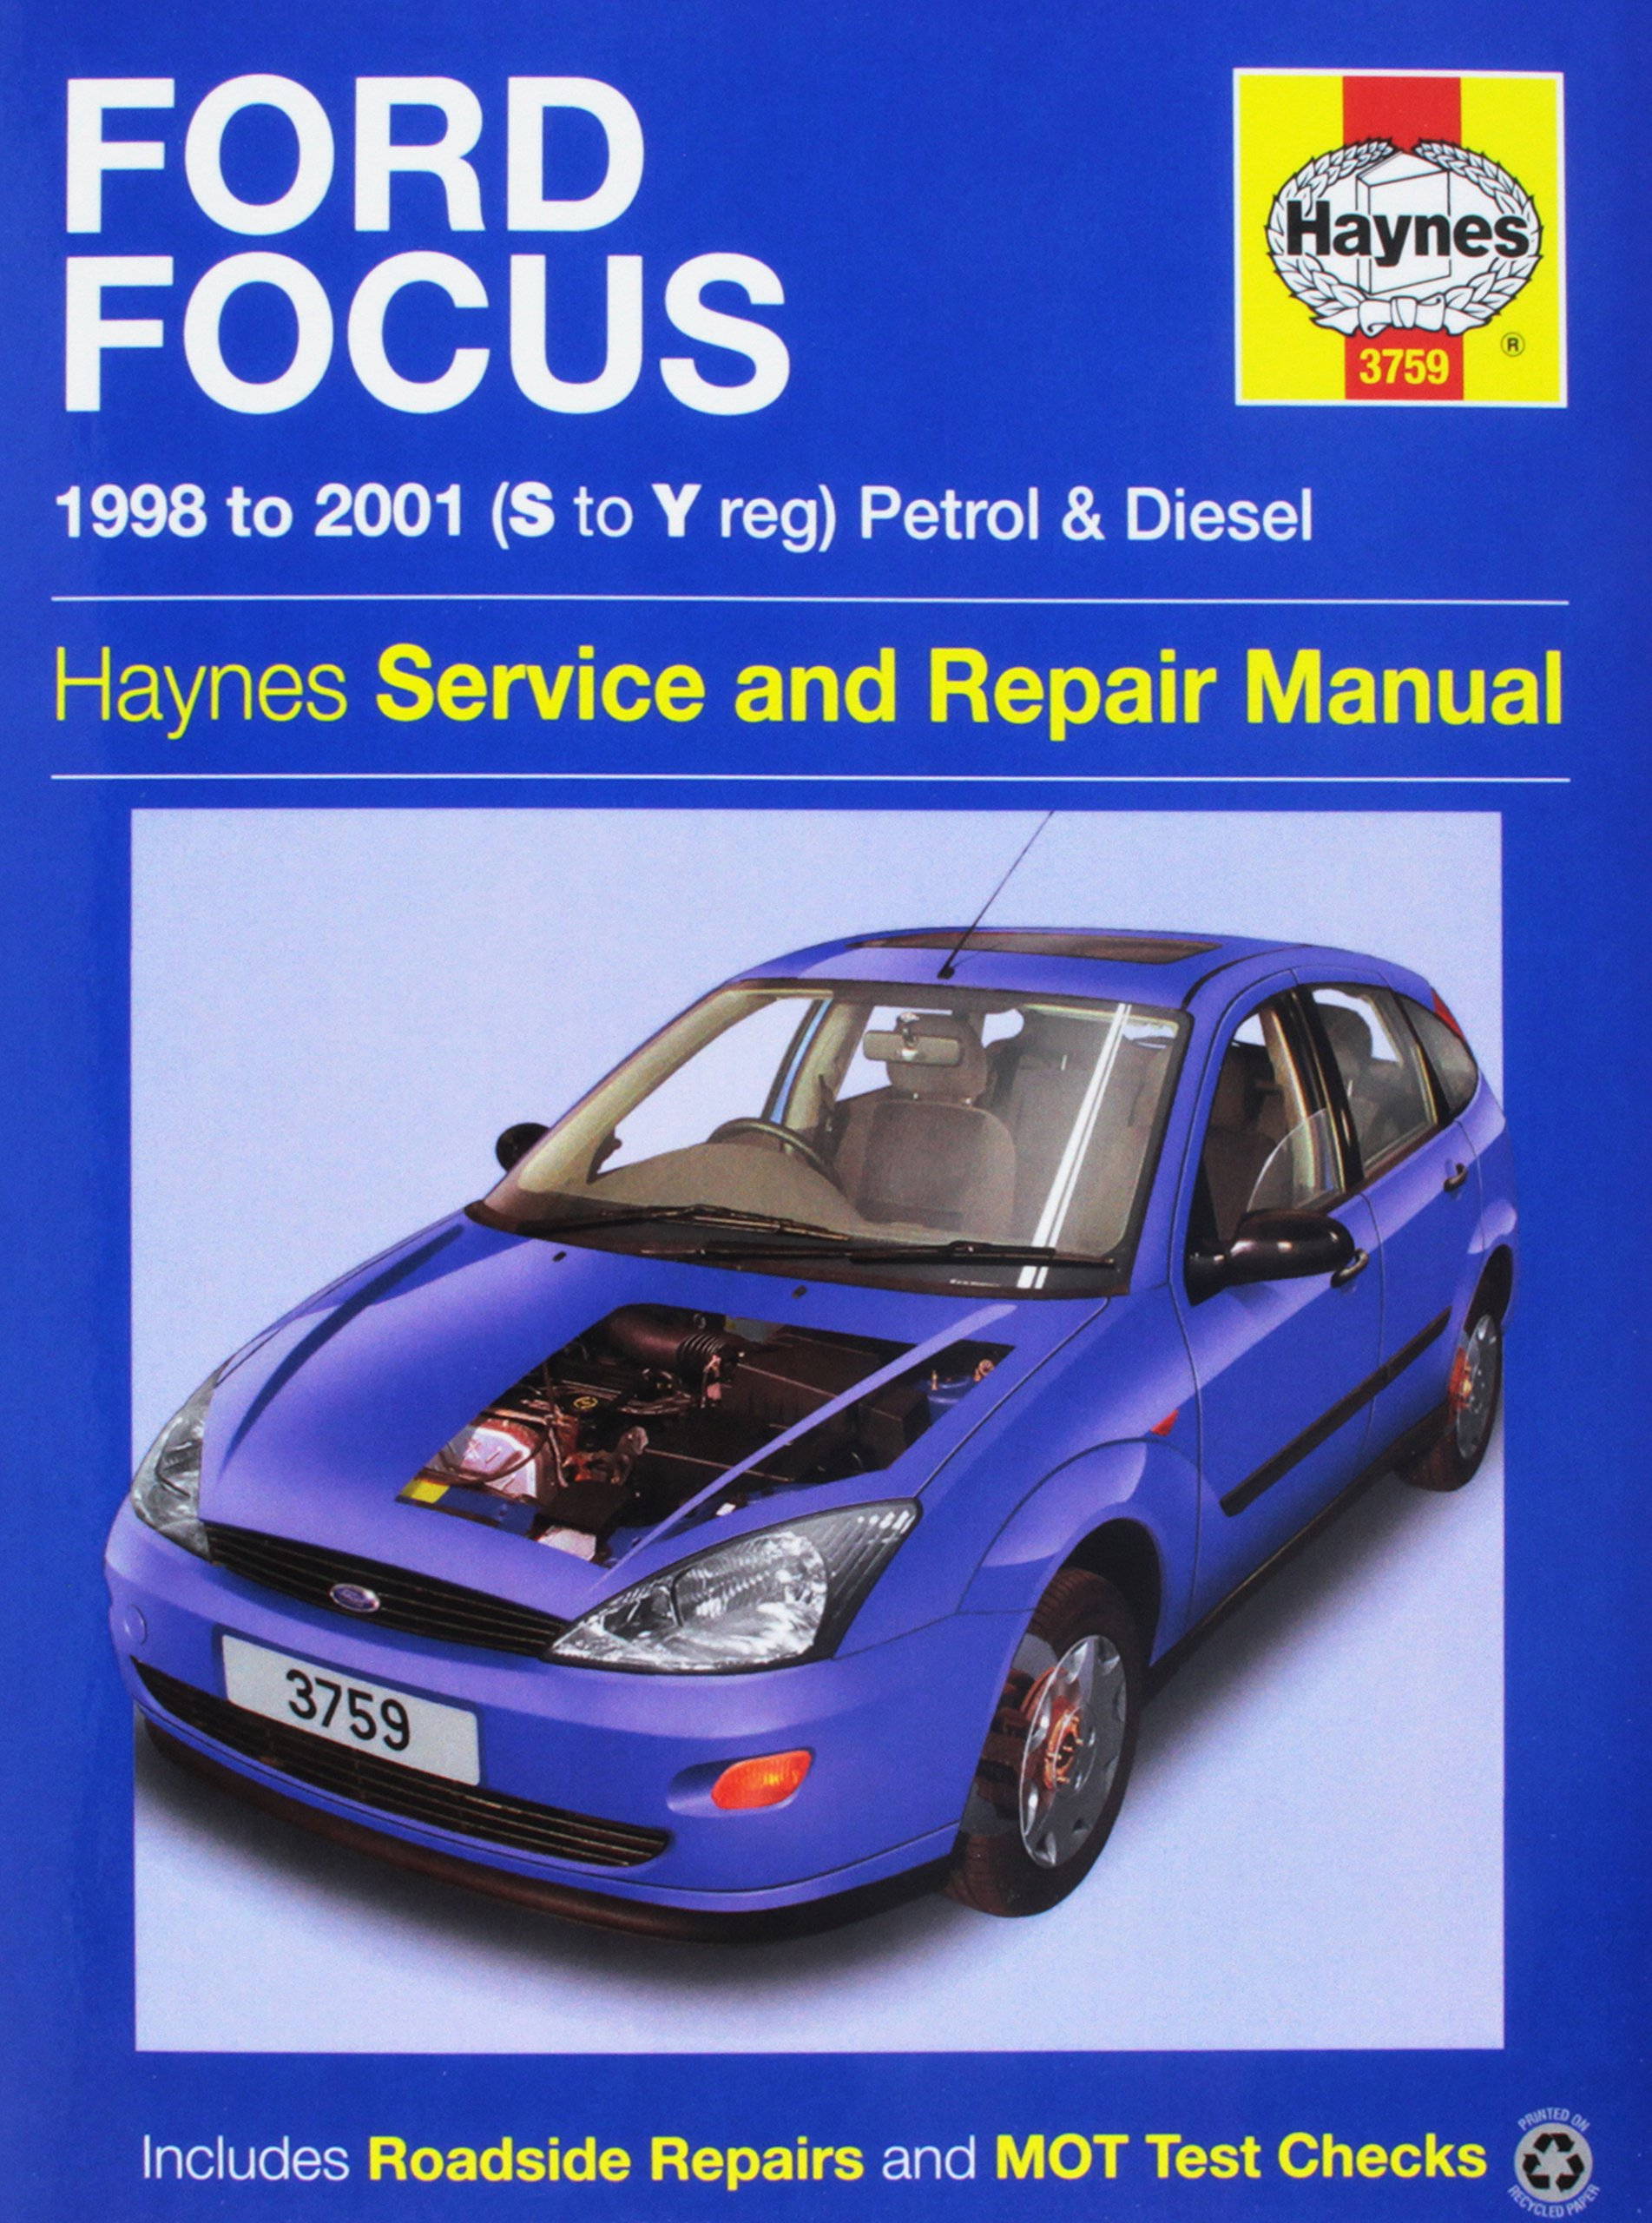 Ford Focus Service and Repair Manual (Haynes Service and Repair Manuals):  R.M. Jex, P. Gill: 0638876409506: Amazon.com: Books